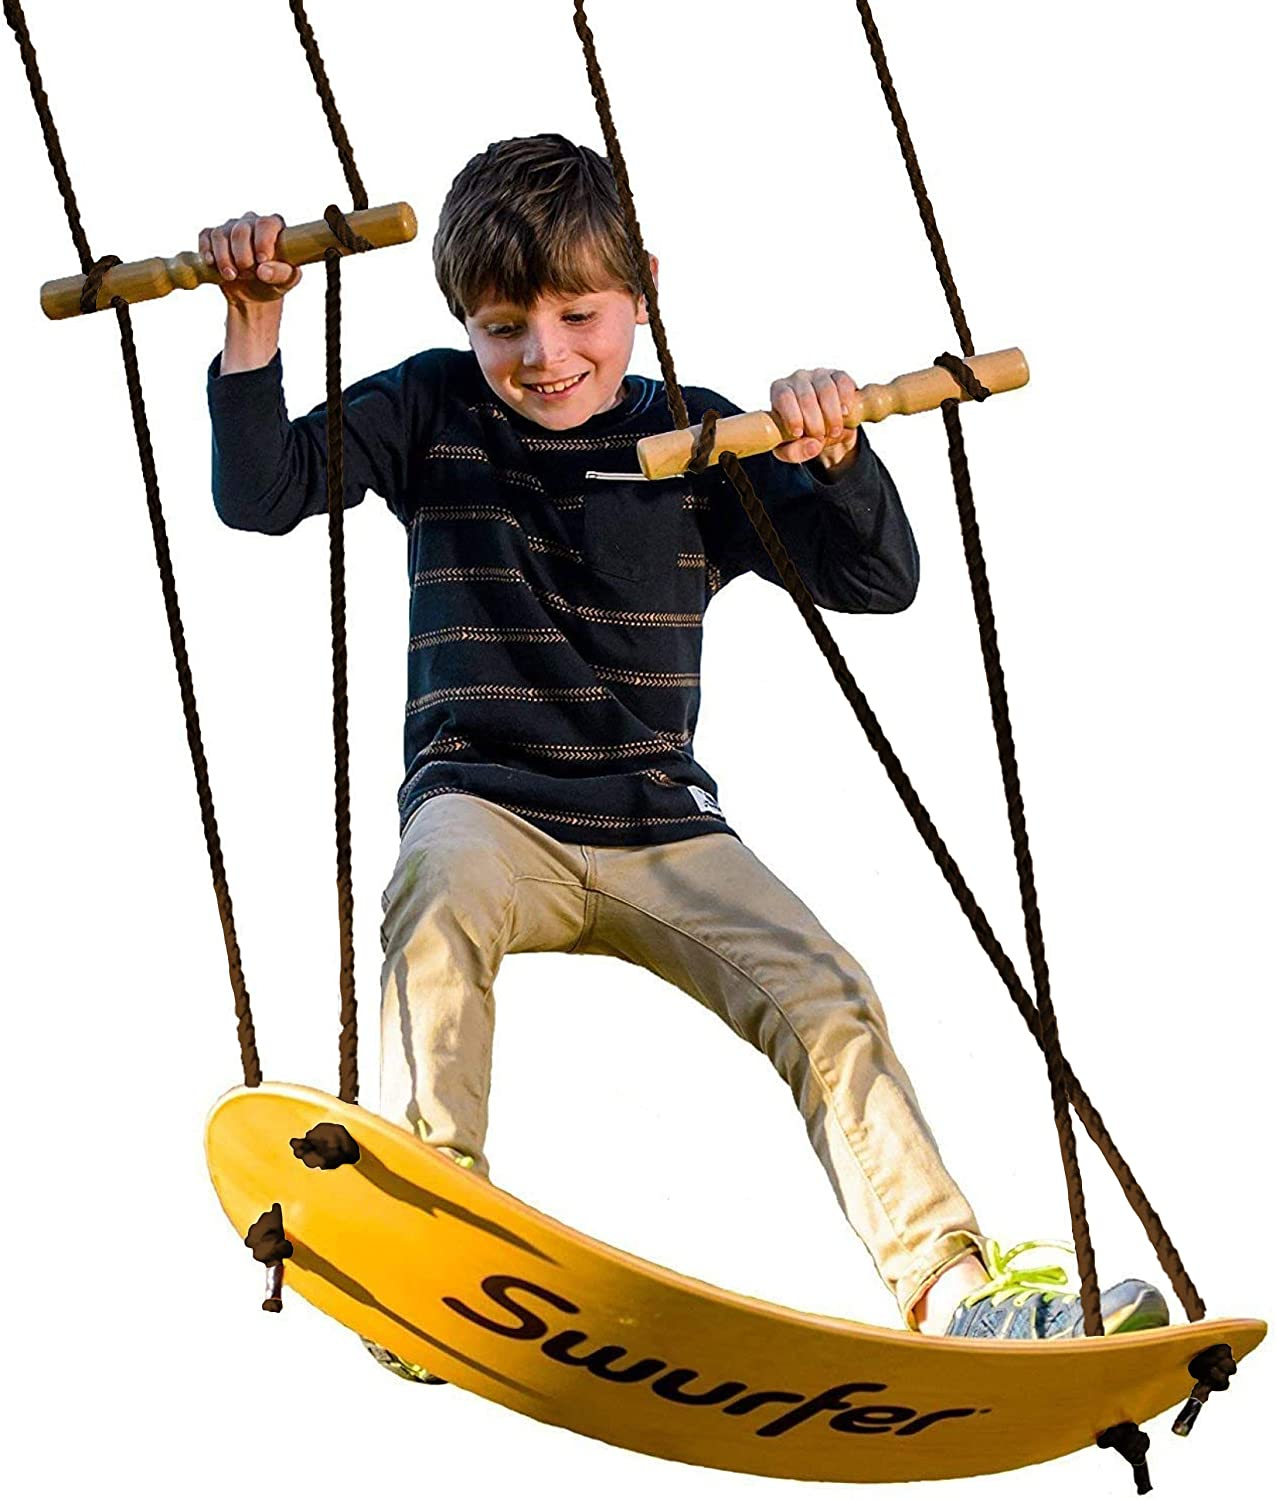 Review of Swurfer - the Original Stand Up Surfing Swing - Curved Maple Wood Board